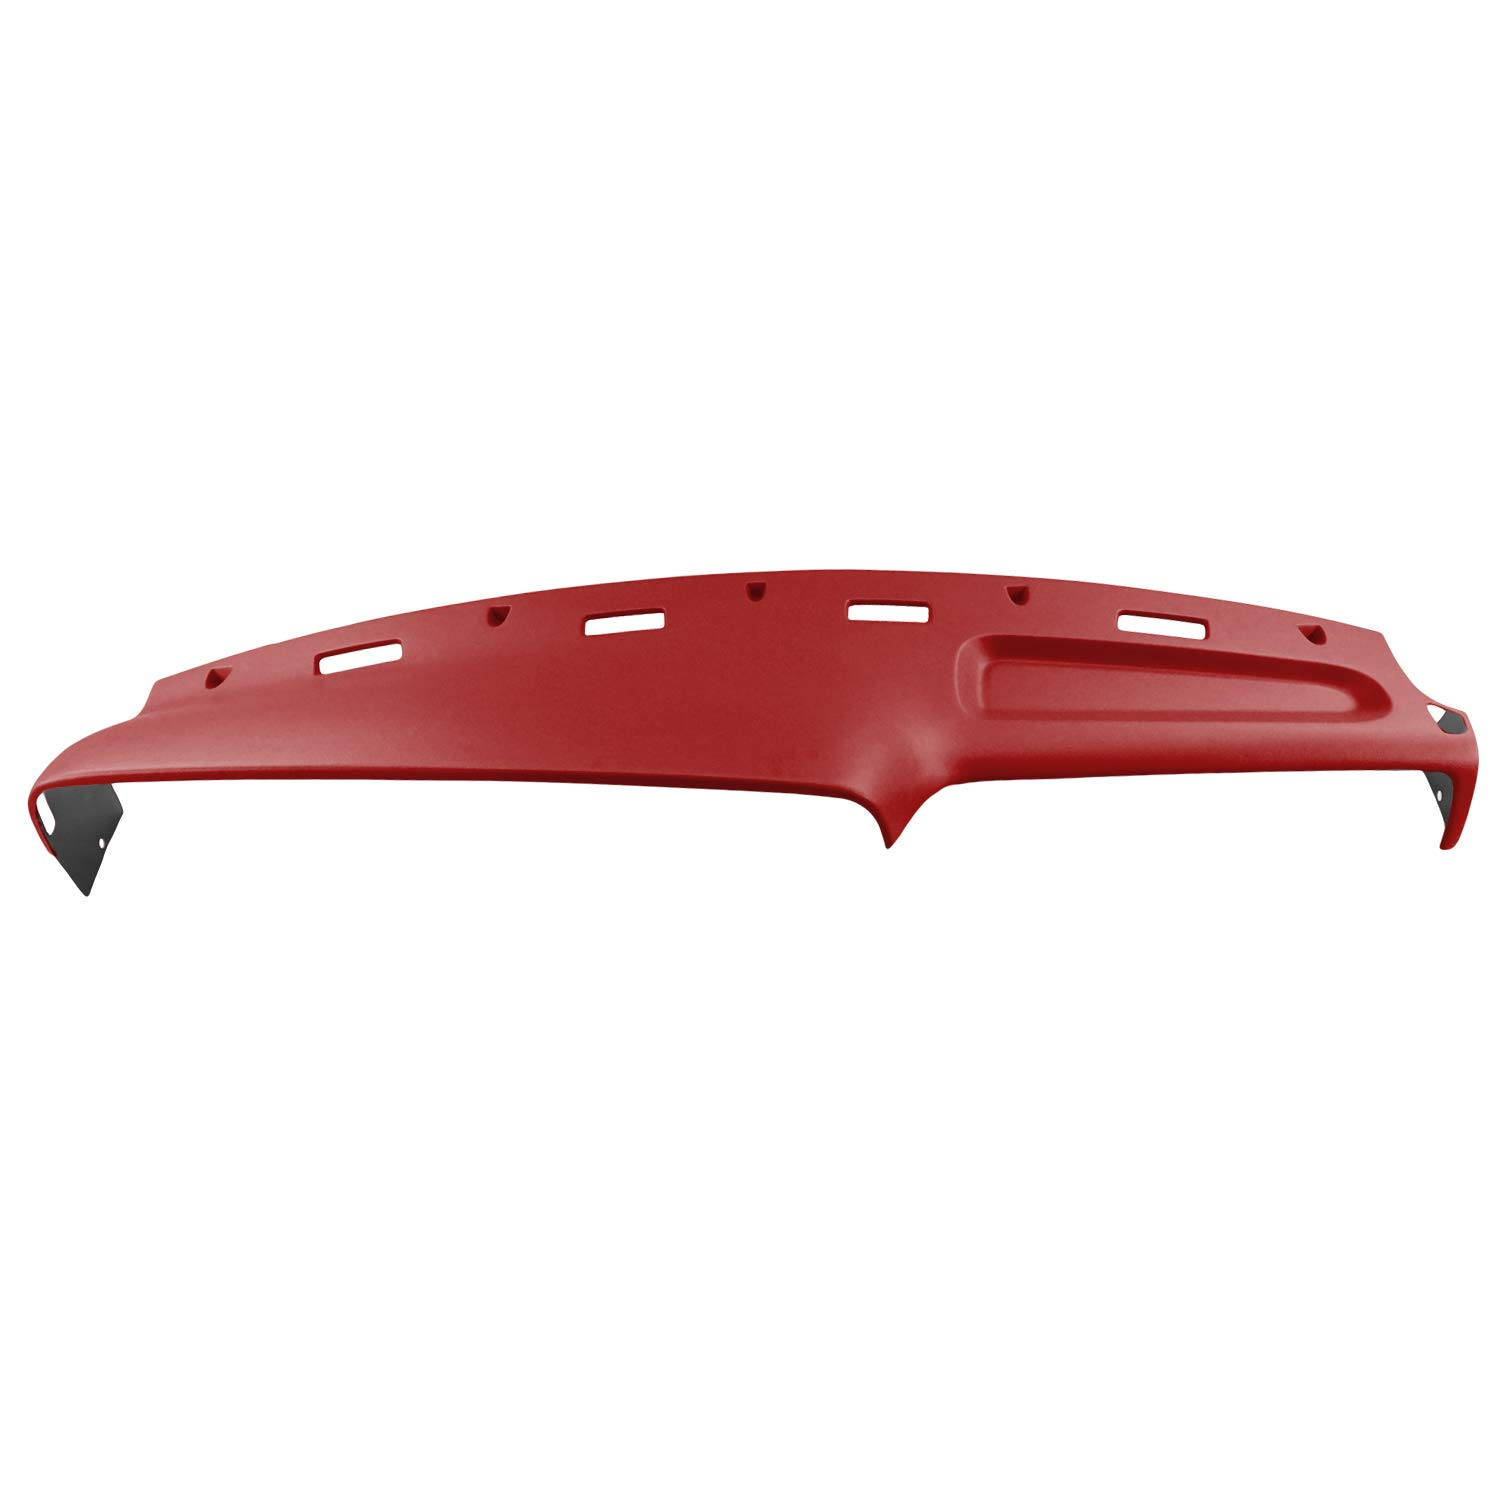 DashSkin Molded Dash Cover Compatible with 94-97 Dodge Ram in Crimson Red